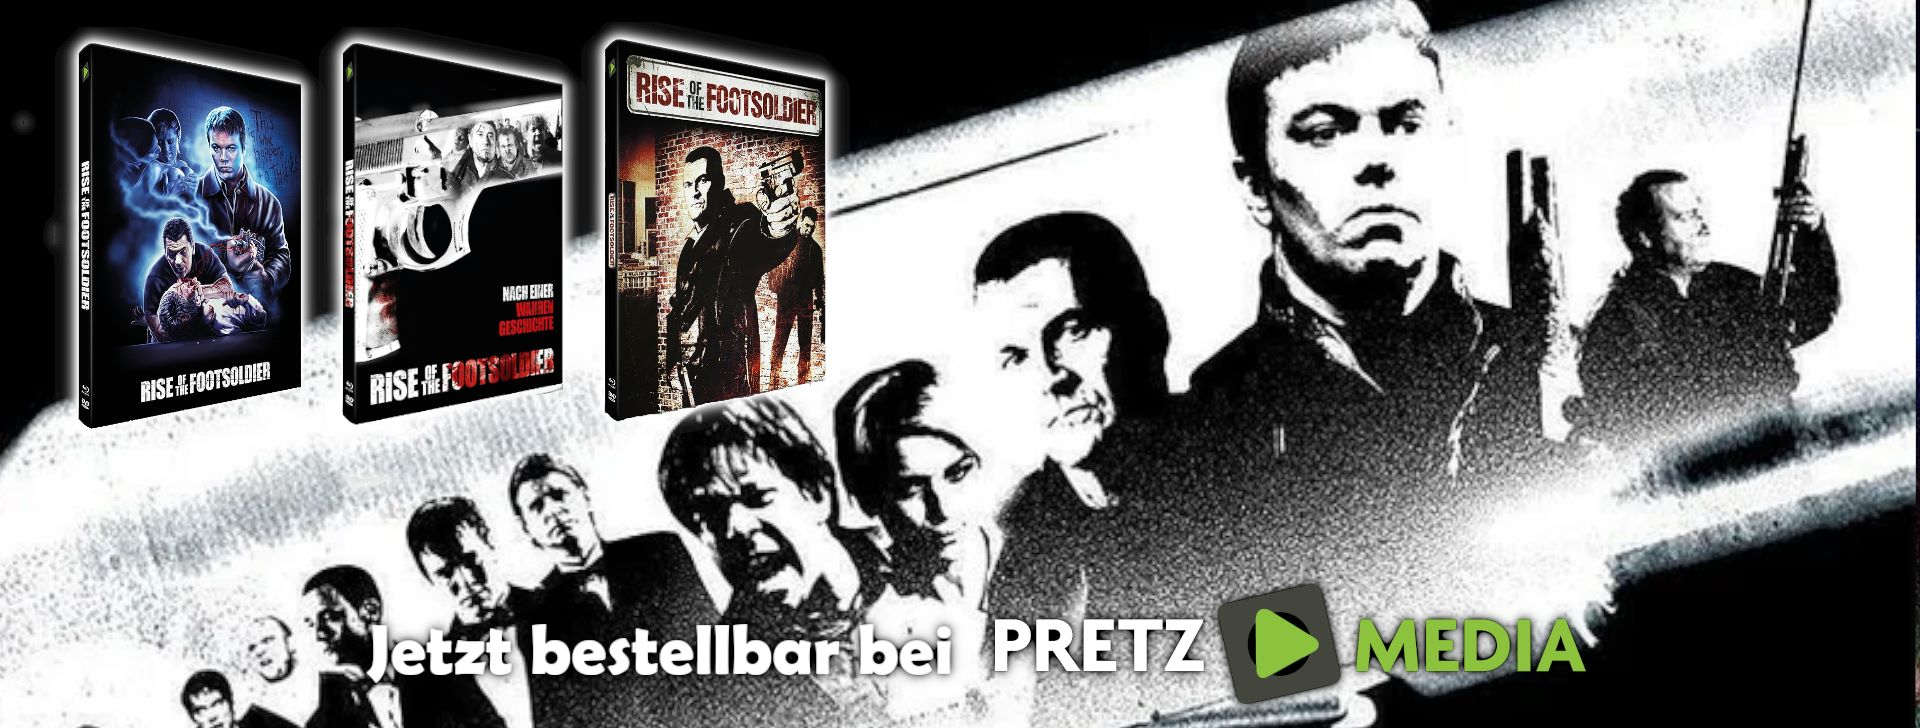 Rise of the Footsoldier - Limited Mediabook